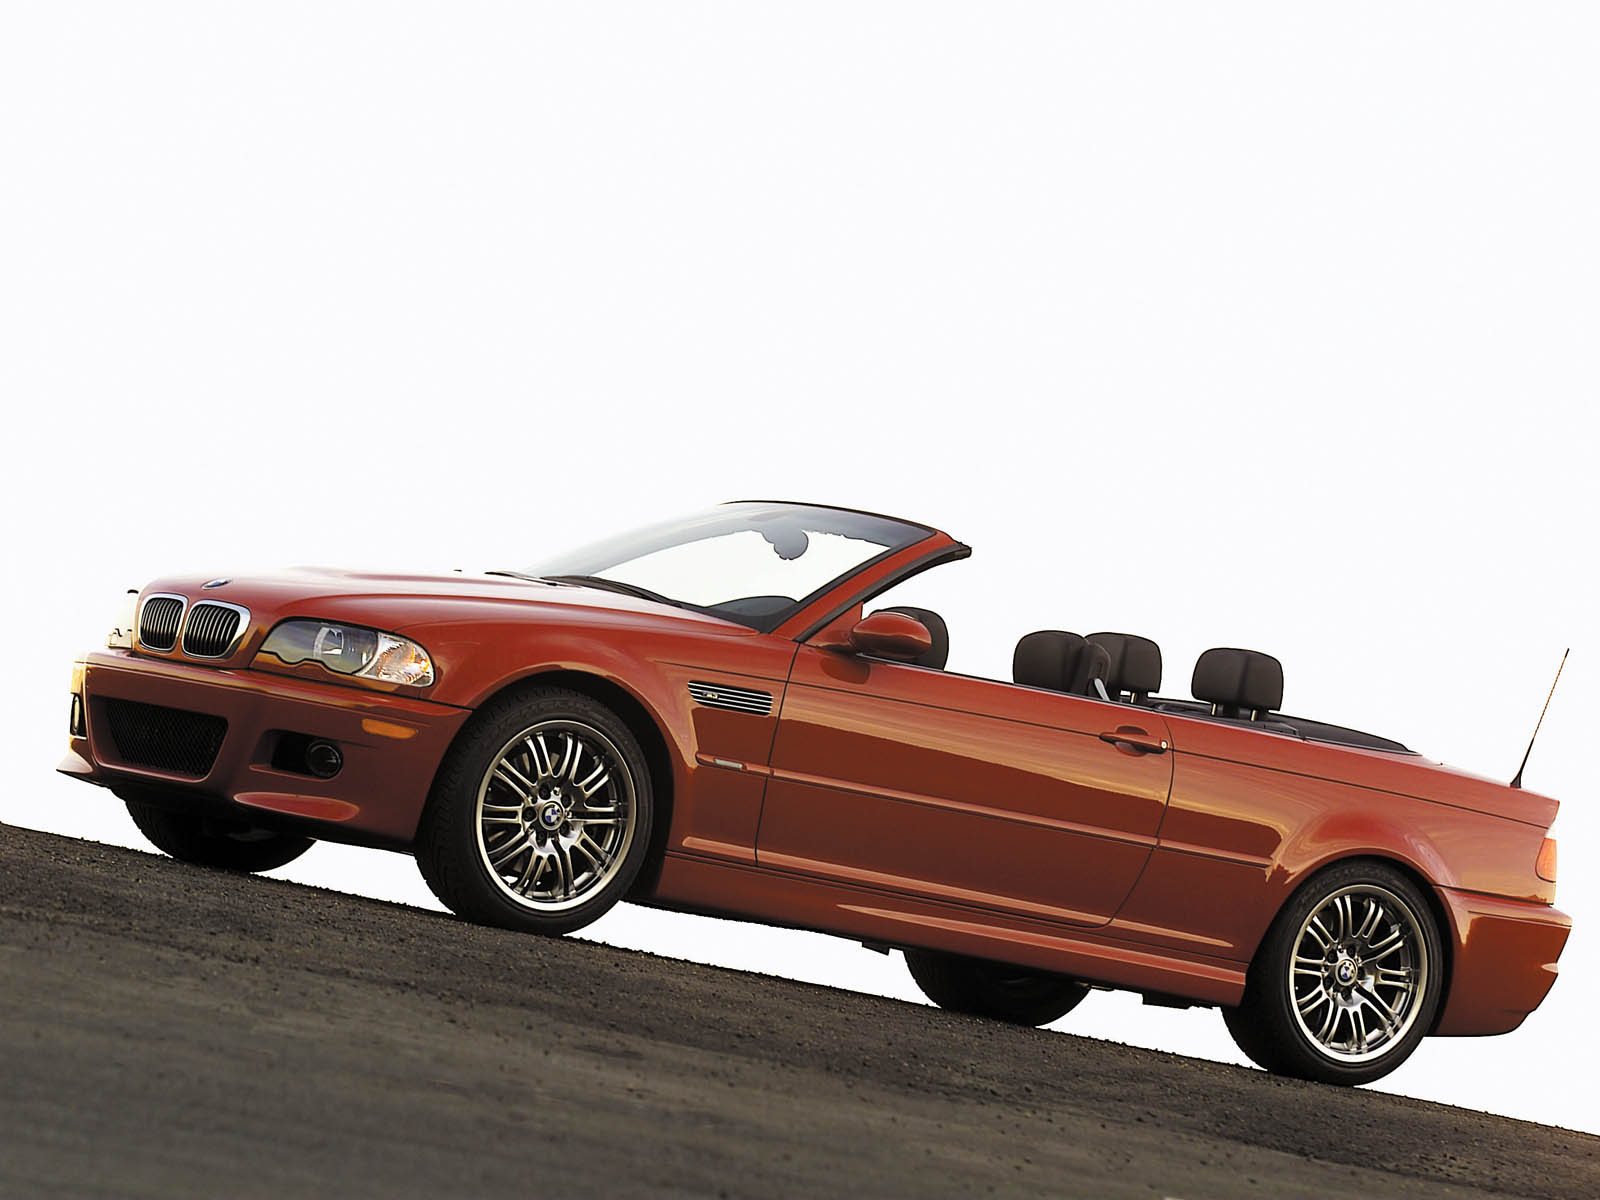 bmw m3 e46 convertible picture 10219 bmw photo gallery. Black Bedroom Furniture Sets. Home Design Ideas